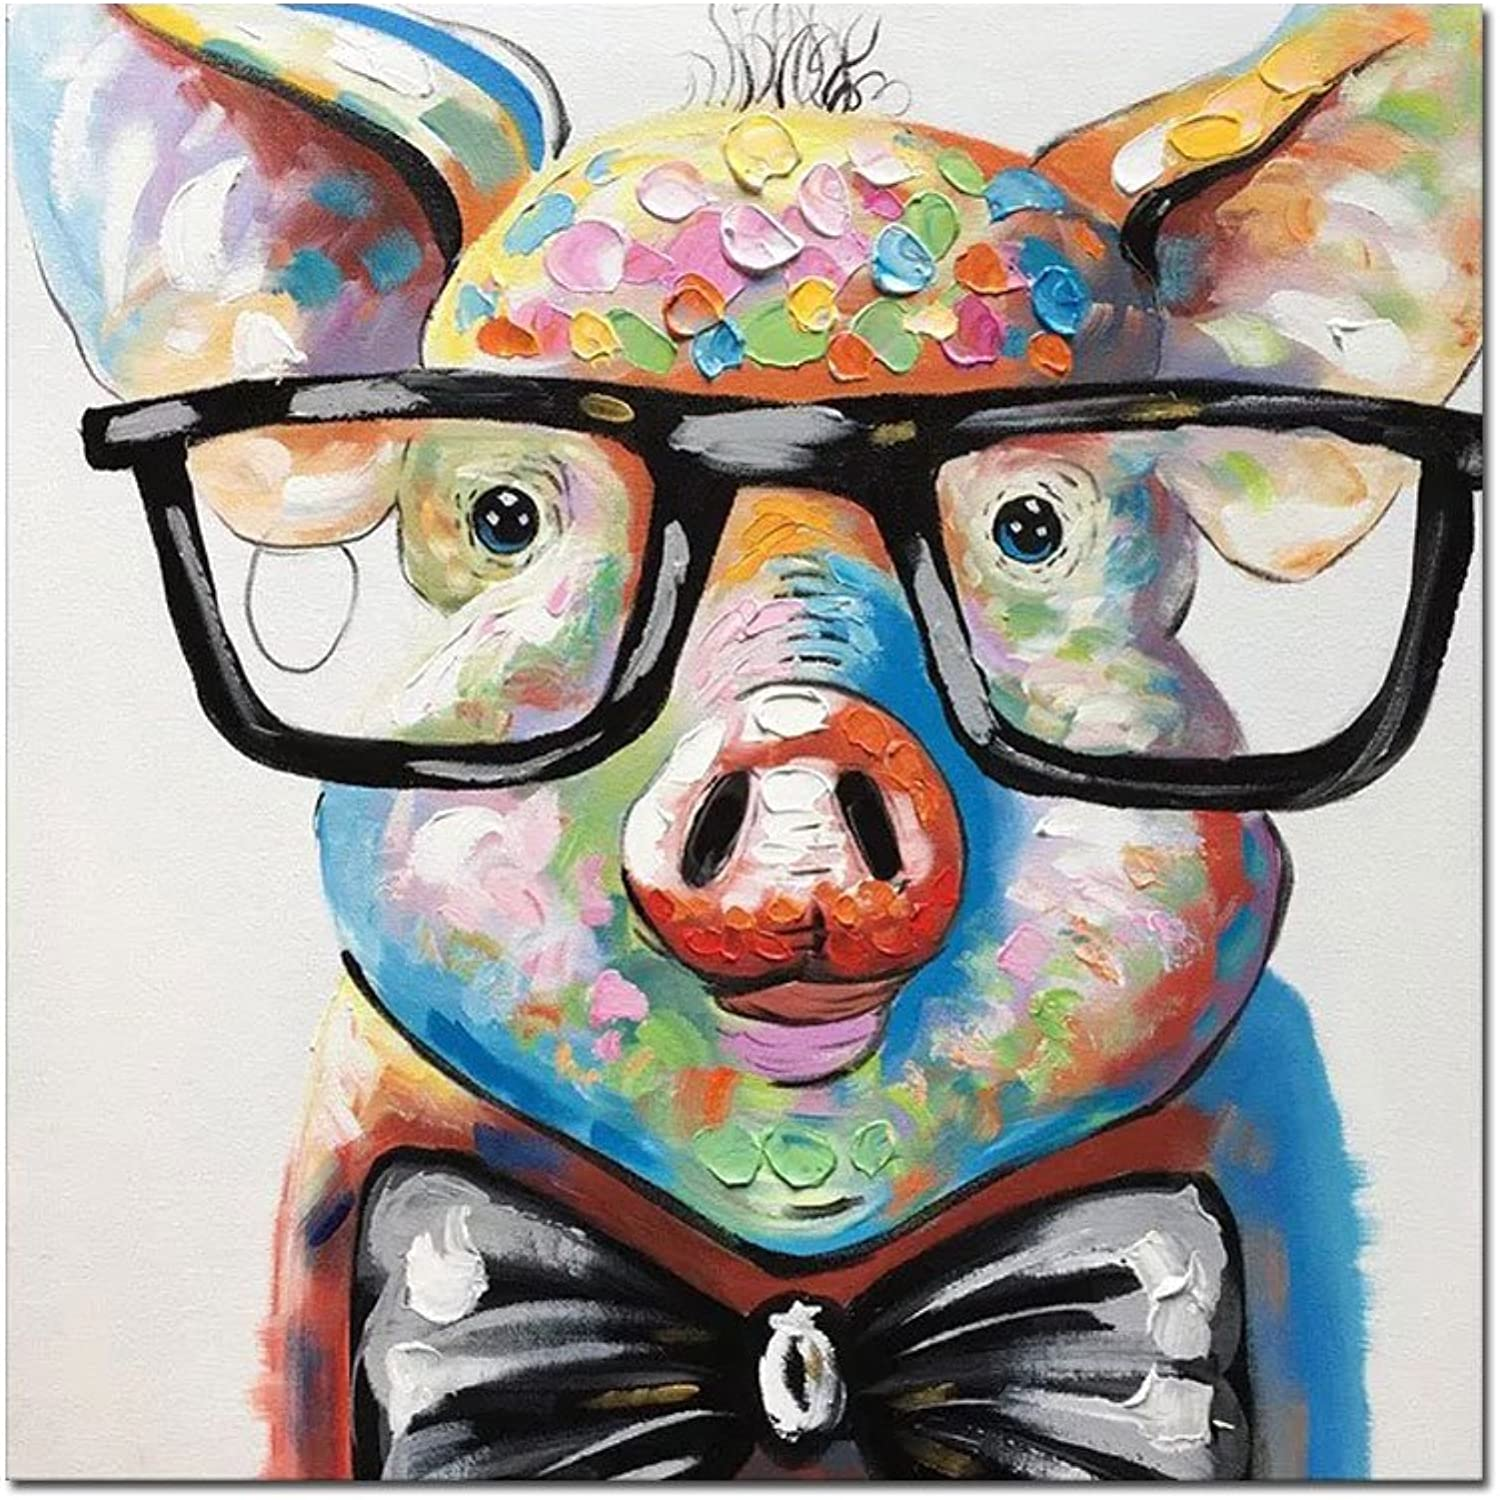 V-inspire Art,24x24 Inch colorful Animal Painting Cute Pig with Glasses Paintings for Living Room Hand Painted Paintings Stretched Ready to Hang